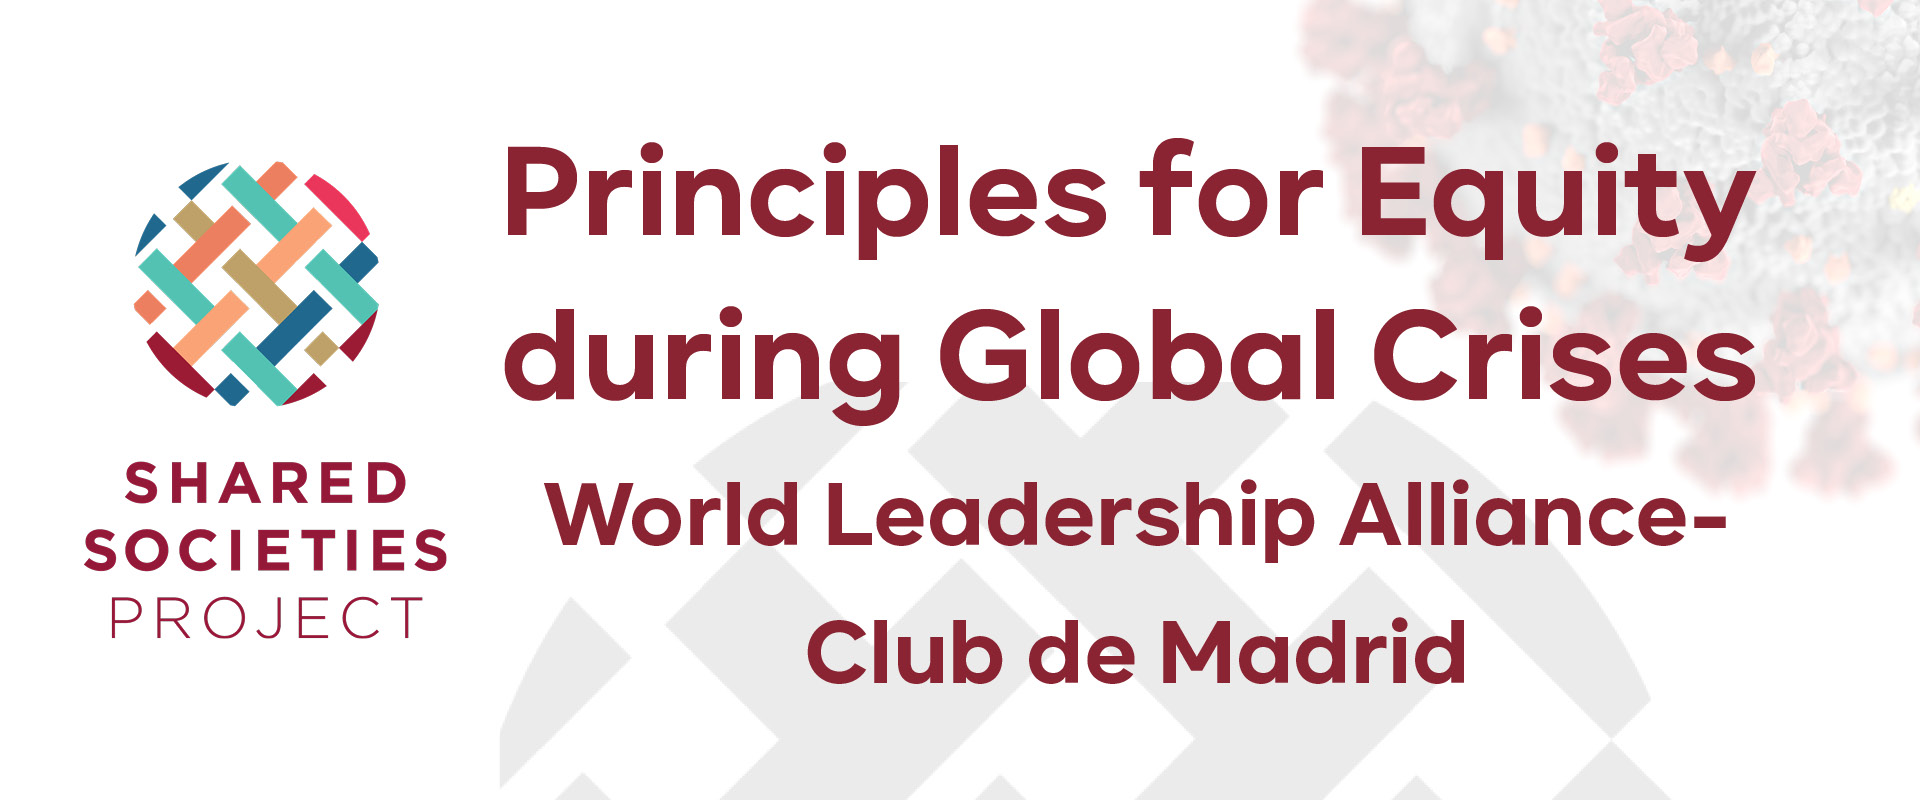 Club de Madrid Members announce principles on equity during global crises